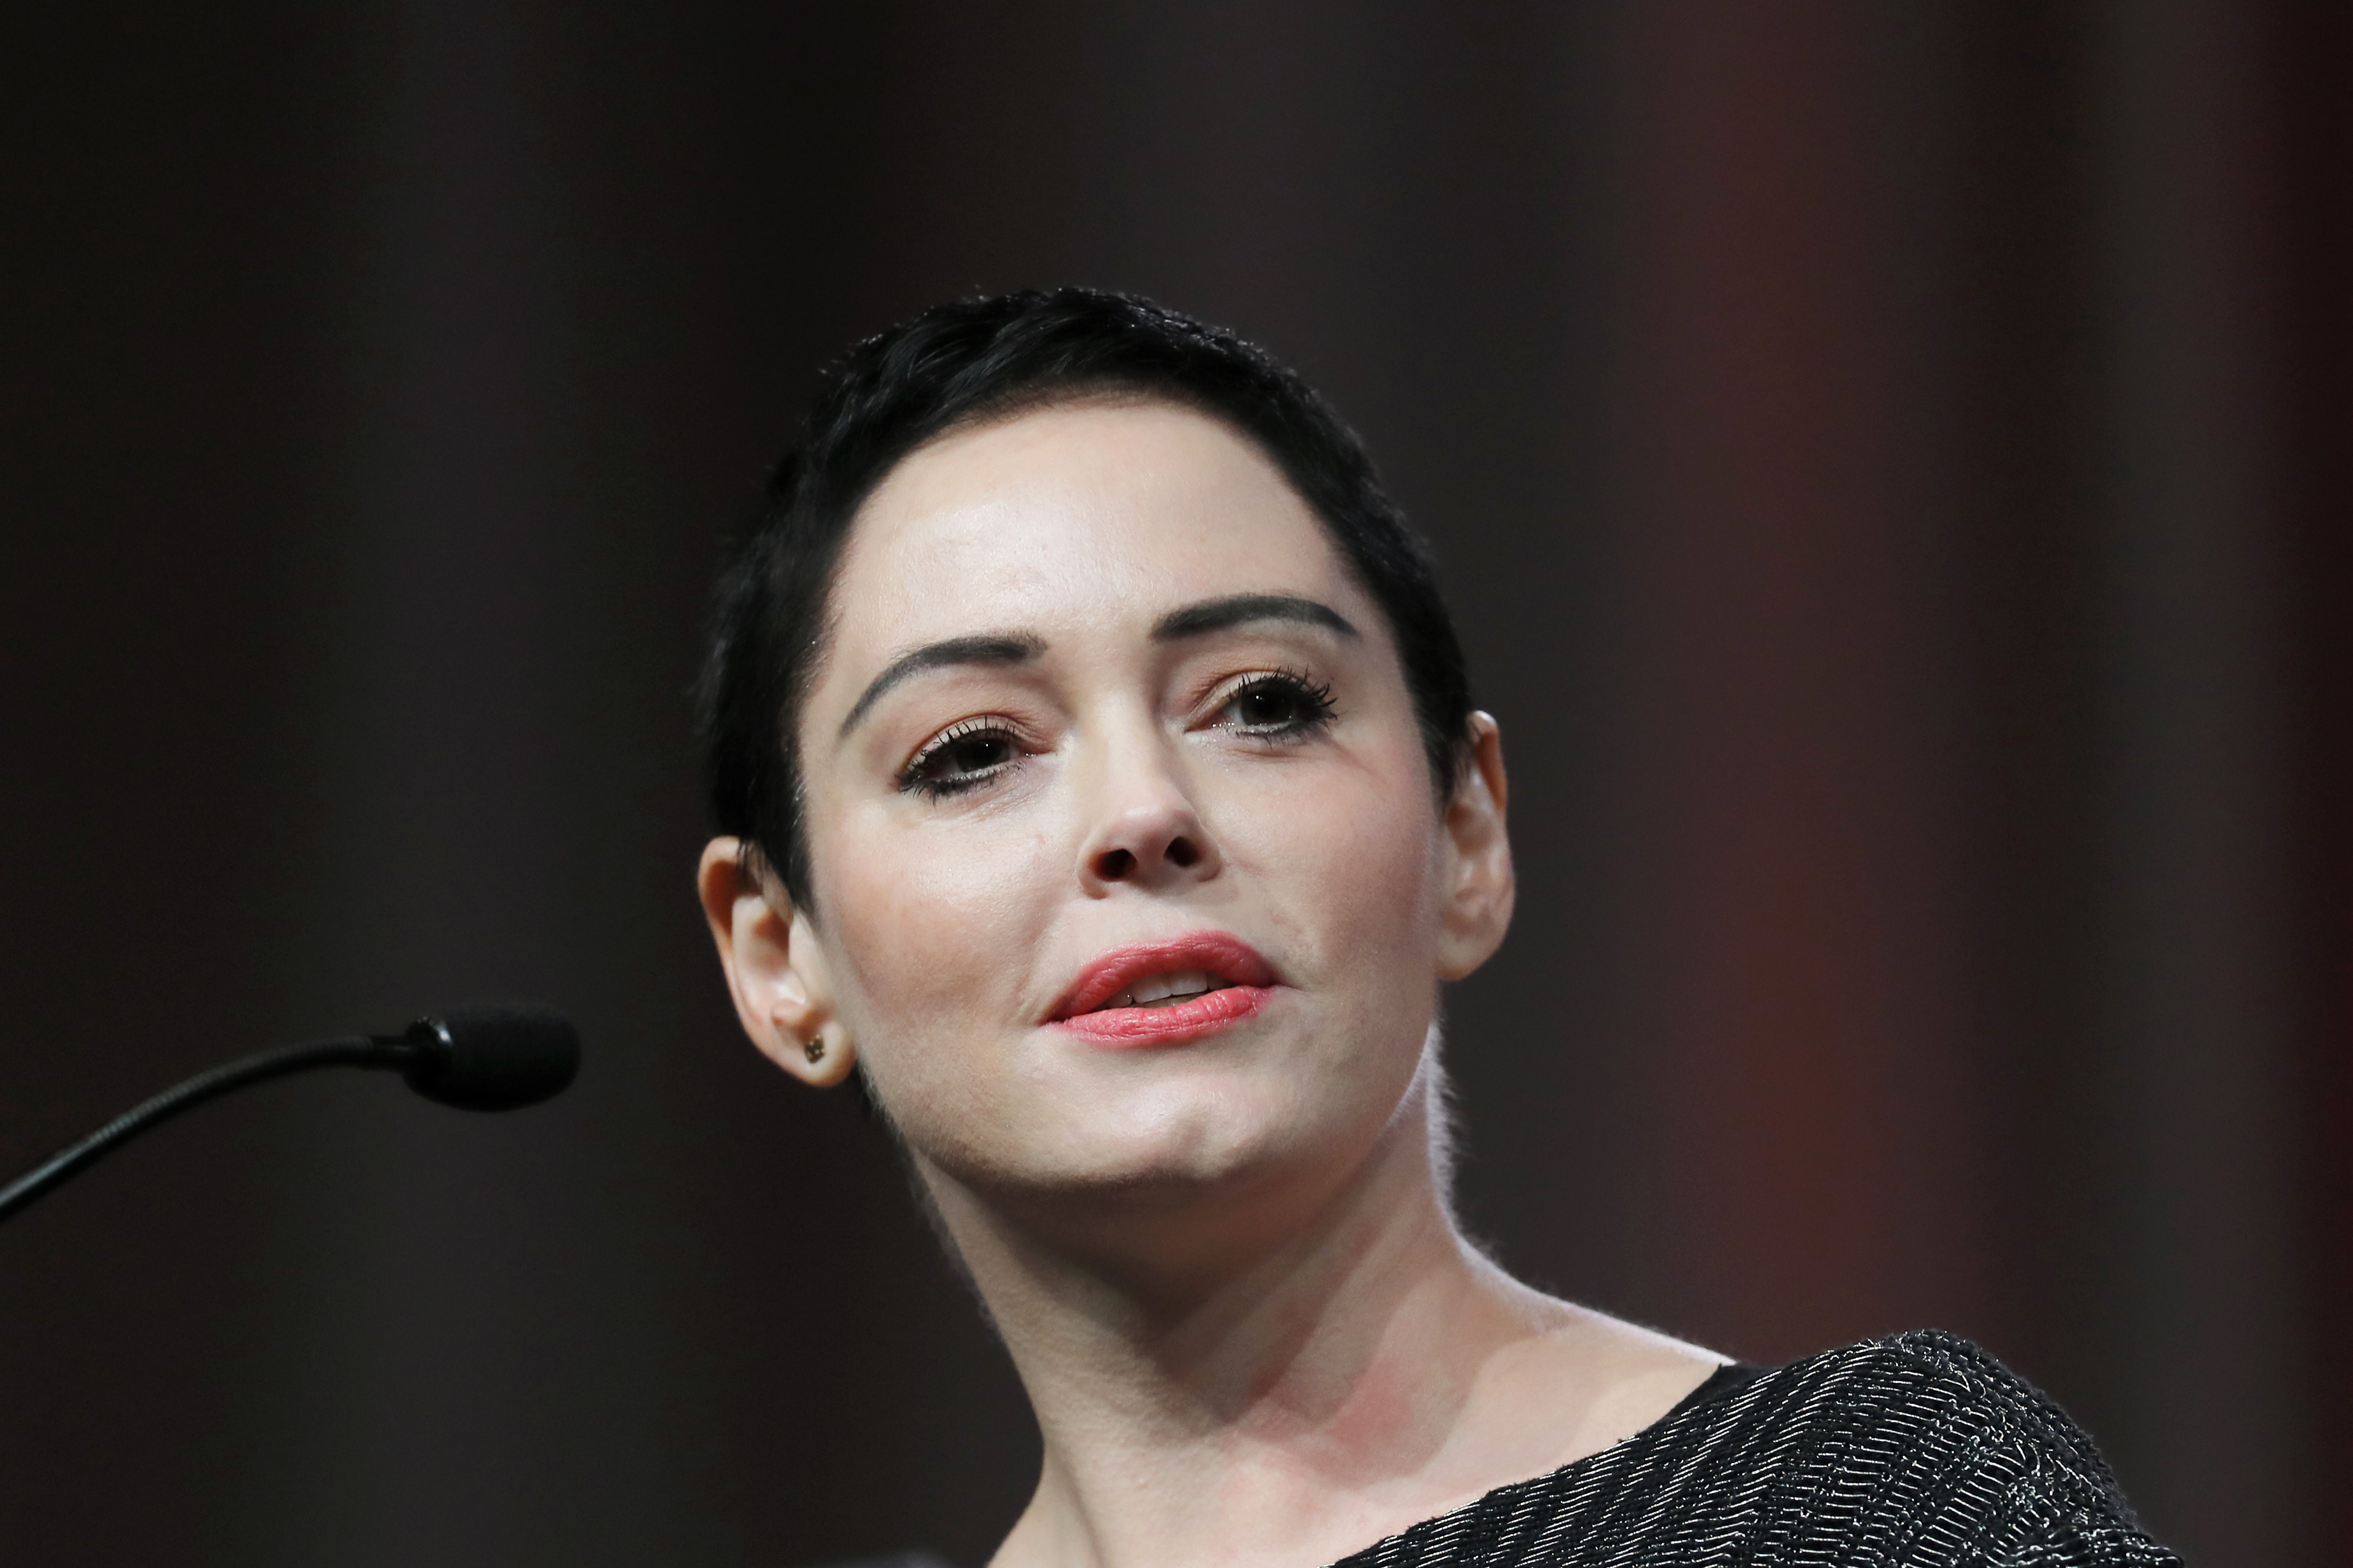 Actress Rose McGowan speaks at the inaugural Women's Convention in Detroit on Oct. 27, 2017.